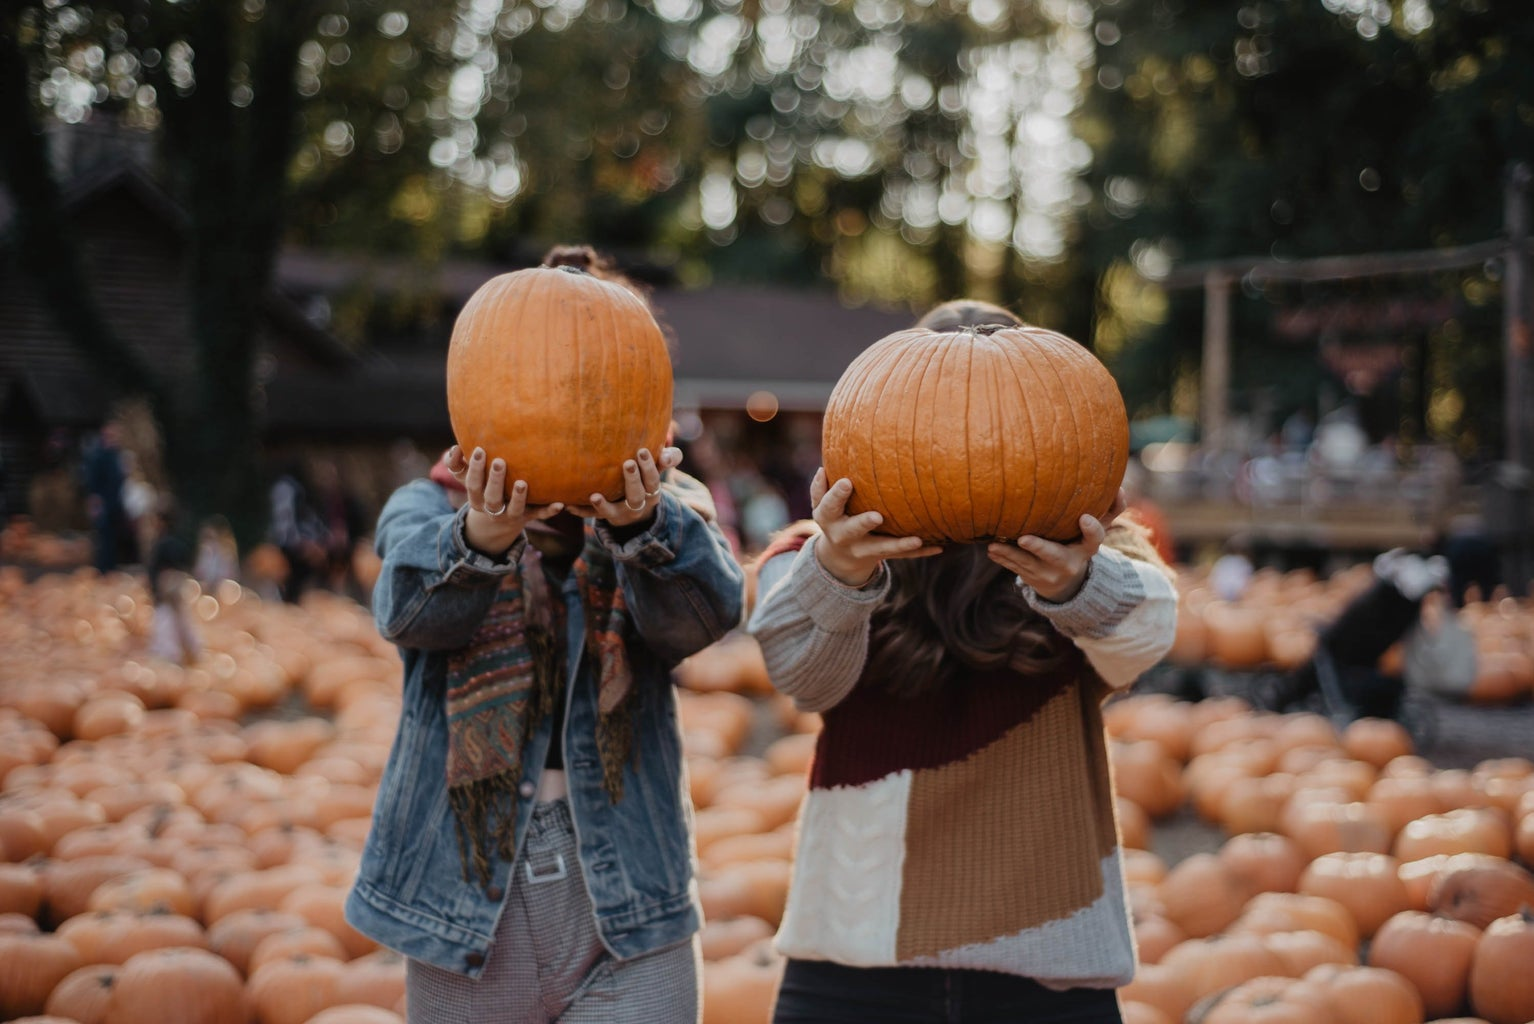 Two women holding pumpkins in front of their faces